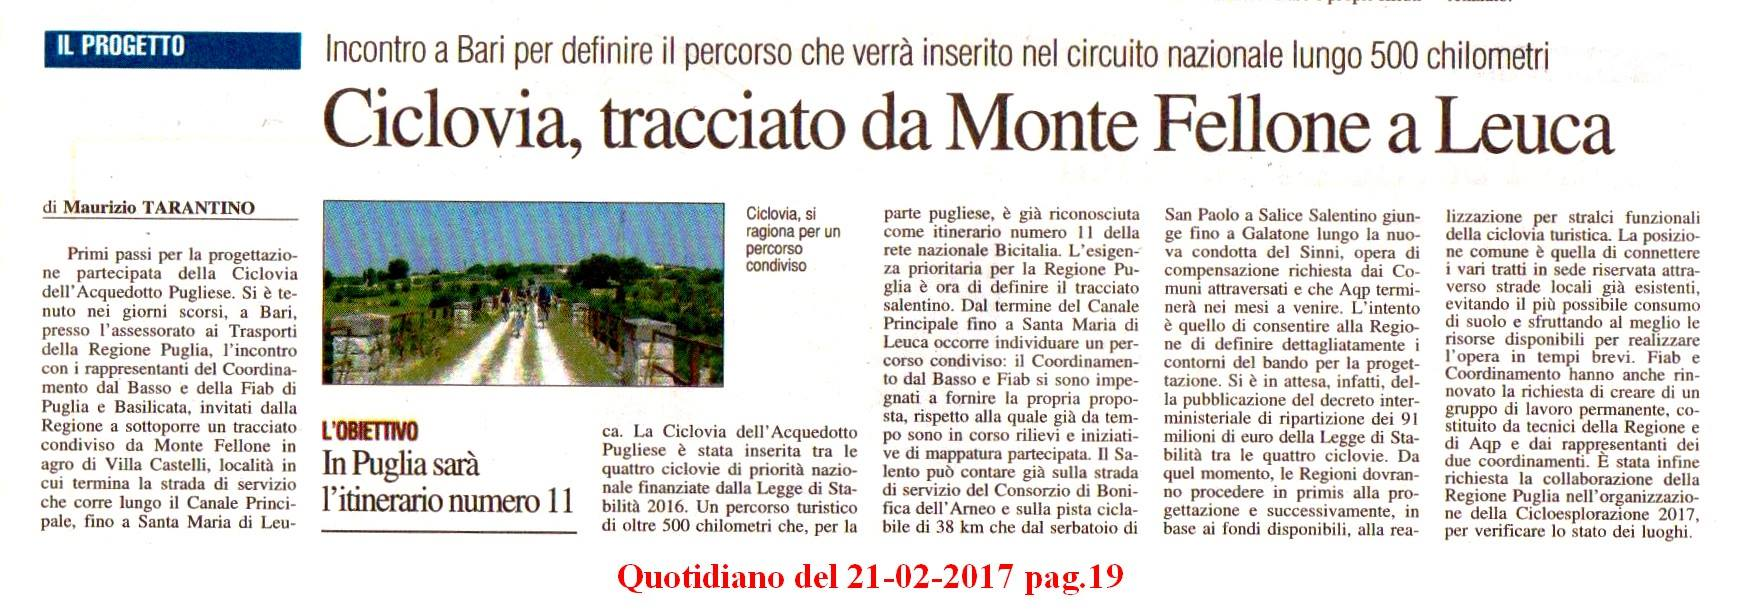 QUOTIDIANO21FEB2017